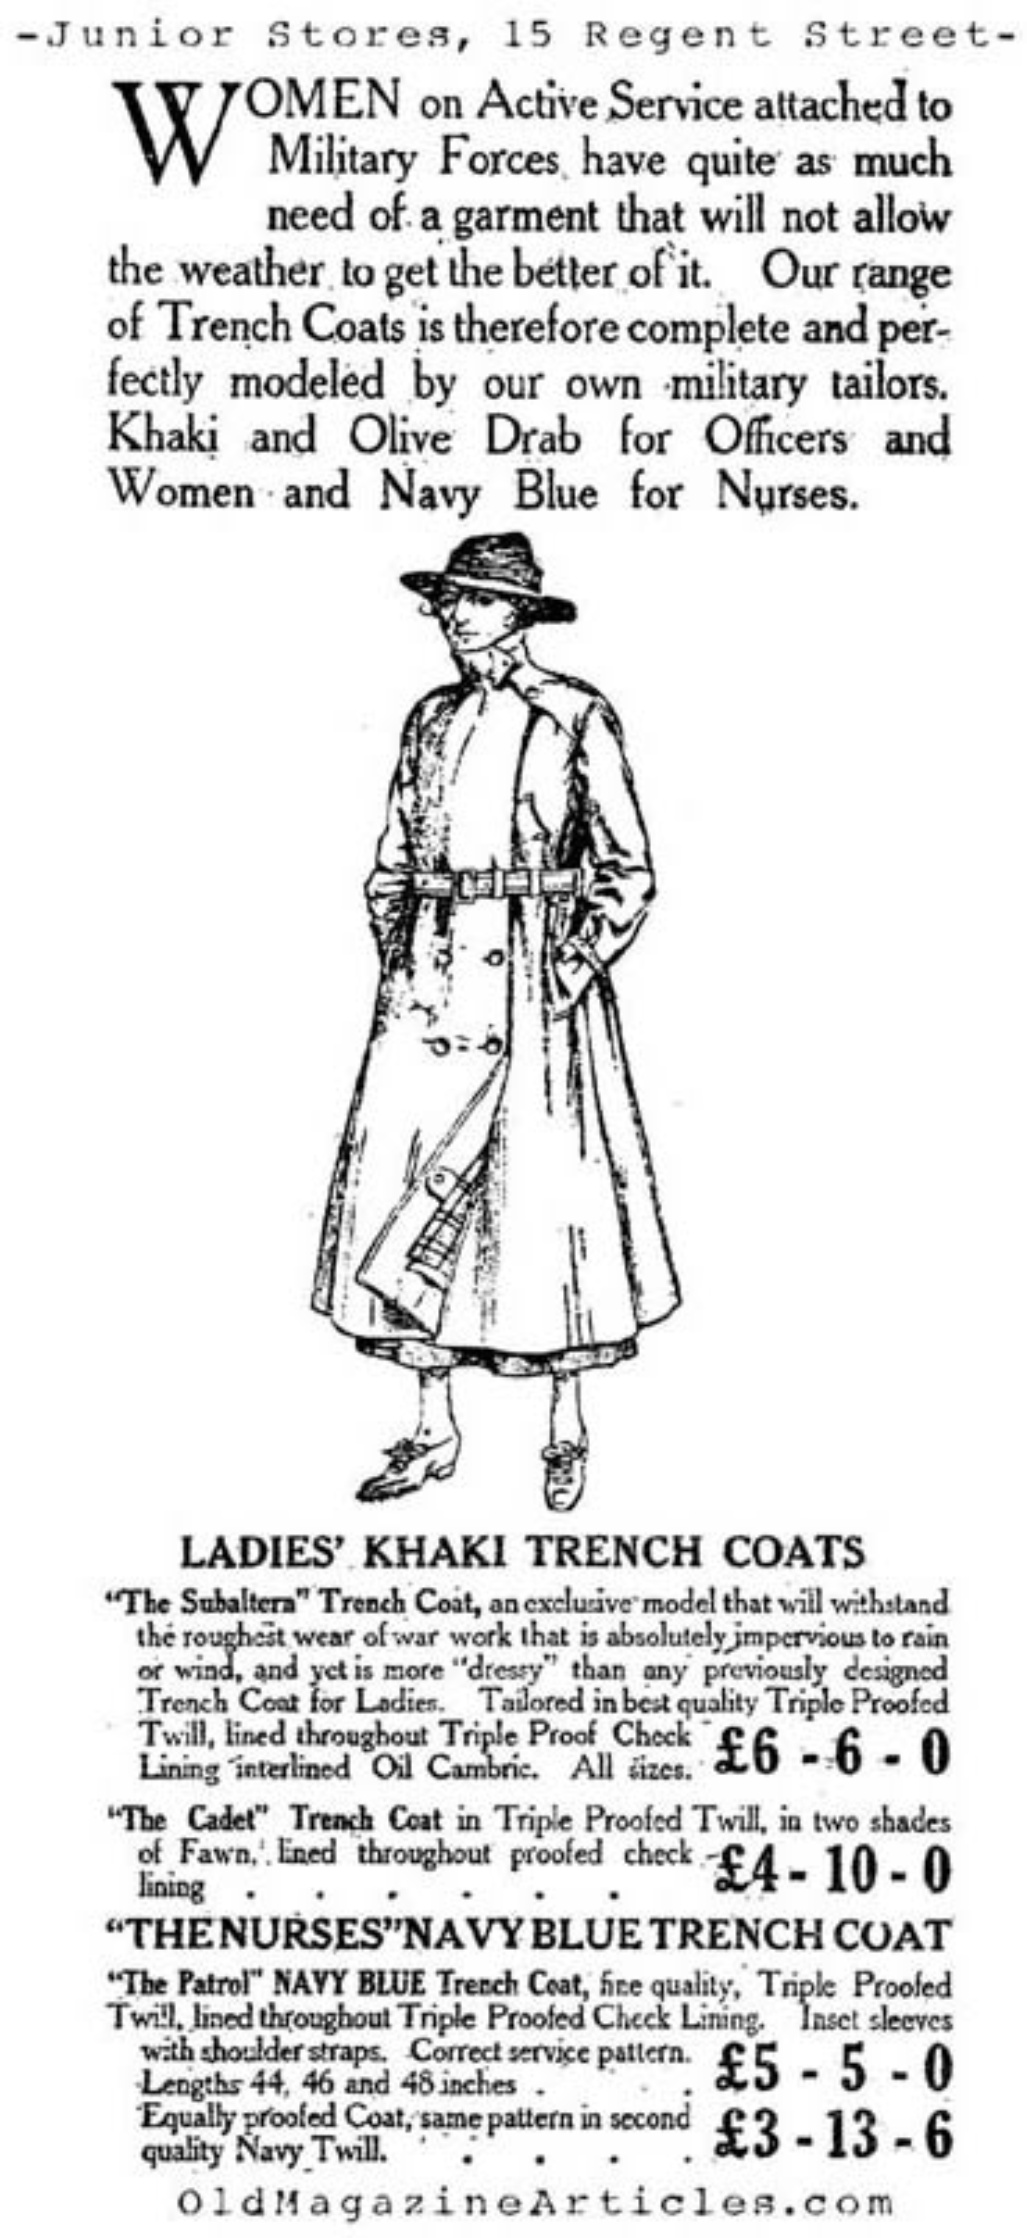 Trench Coats for Women  (The Stars and Stripes, 1918)